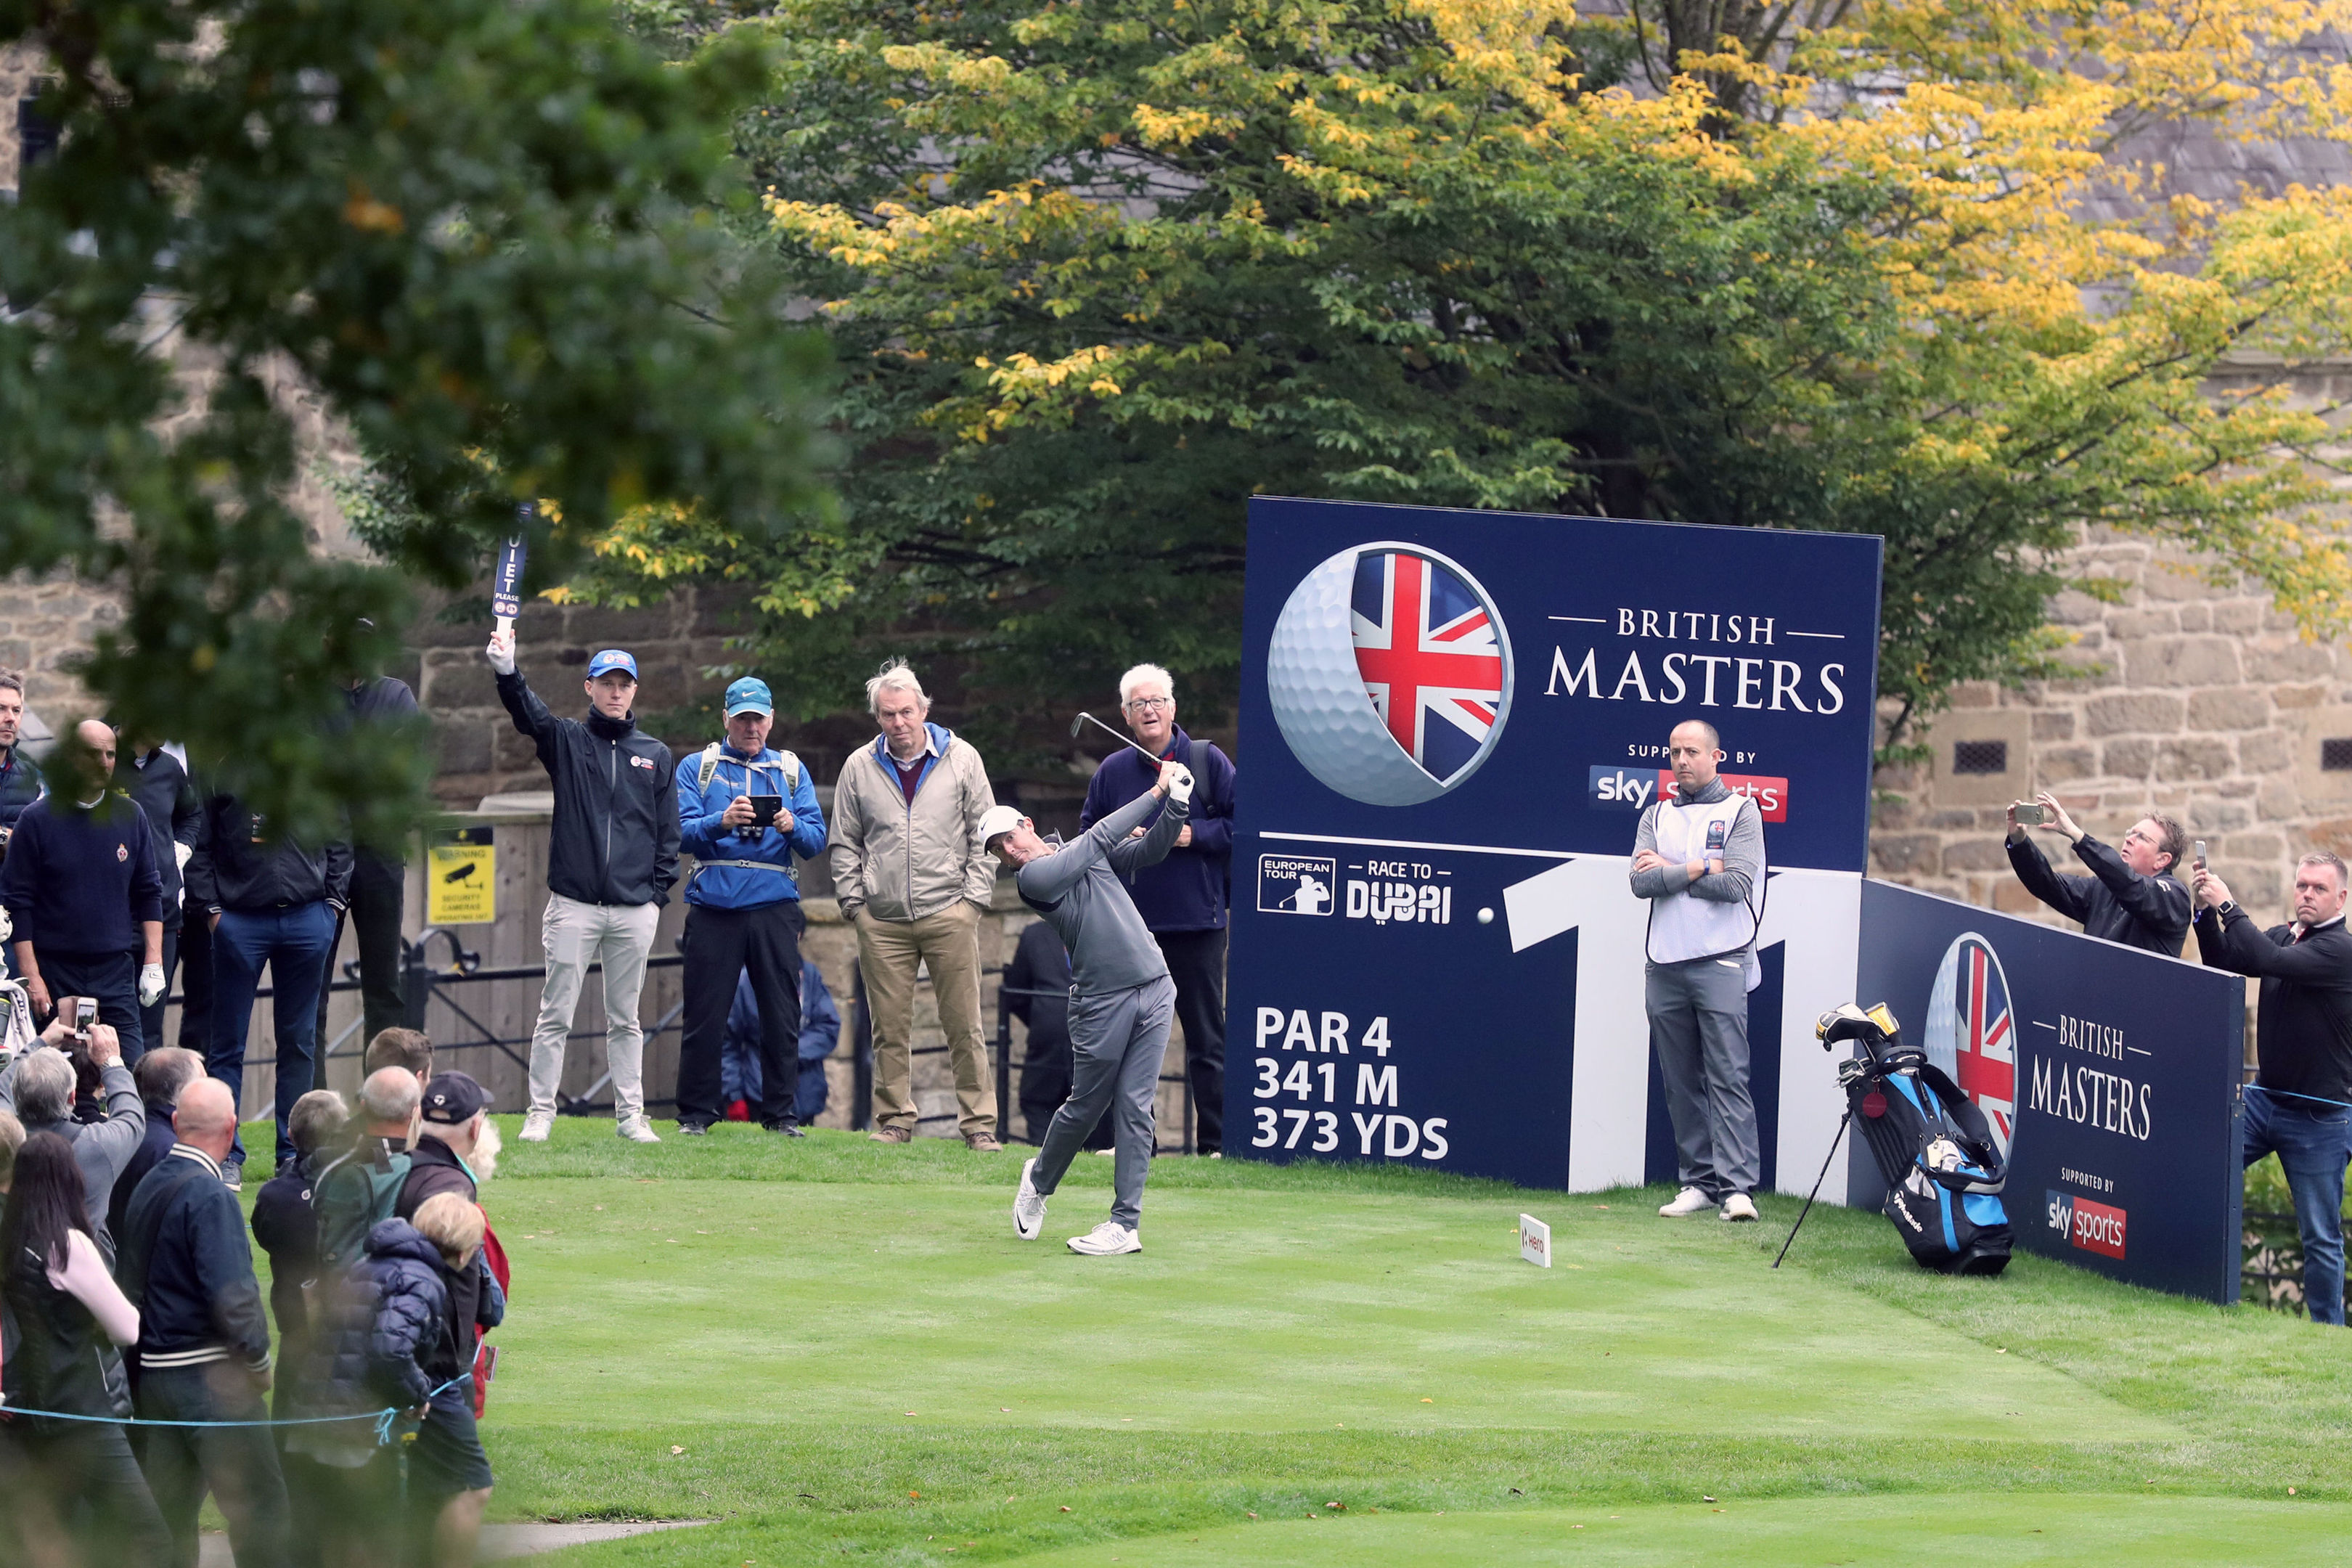 The British Masters, last held at Close House in 2017, will relaunch the European Tour in July.